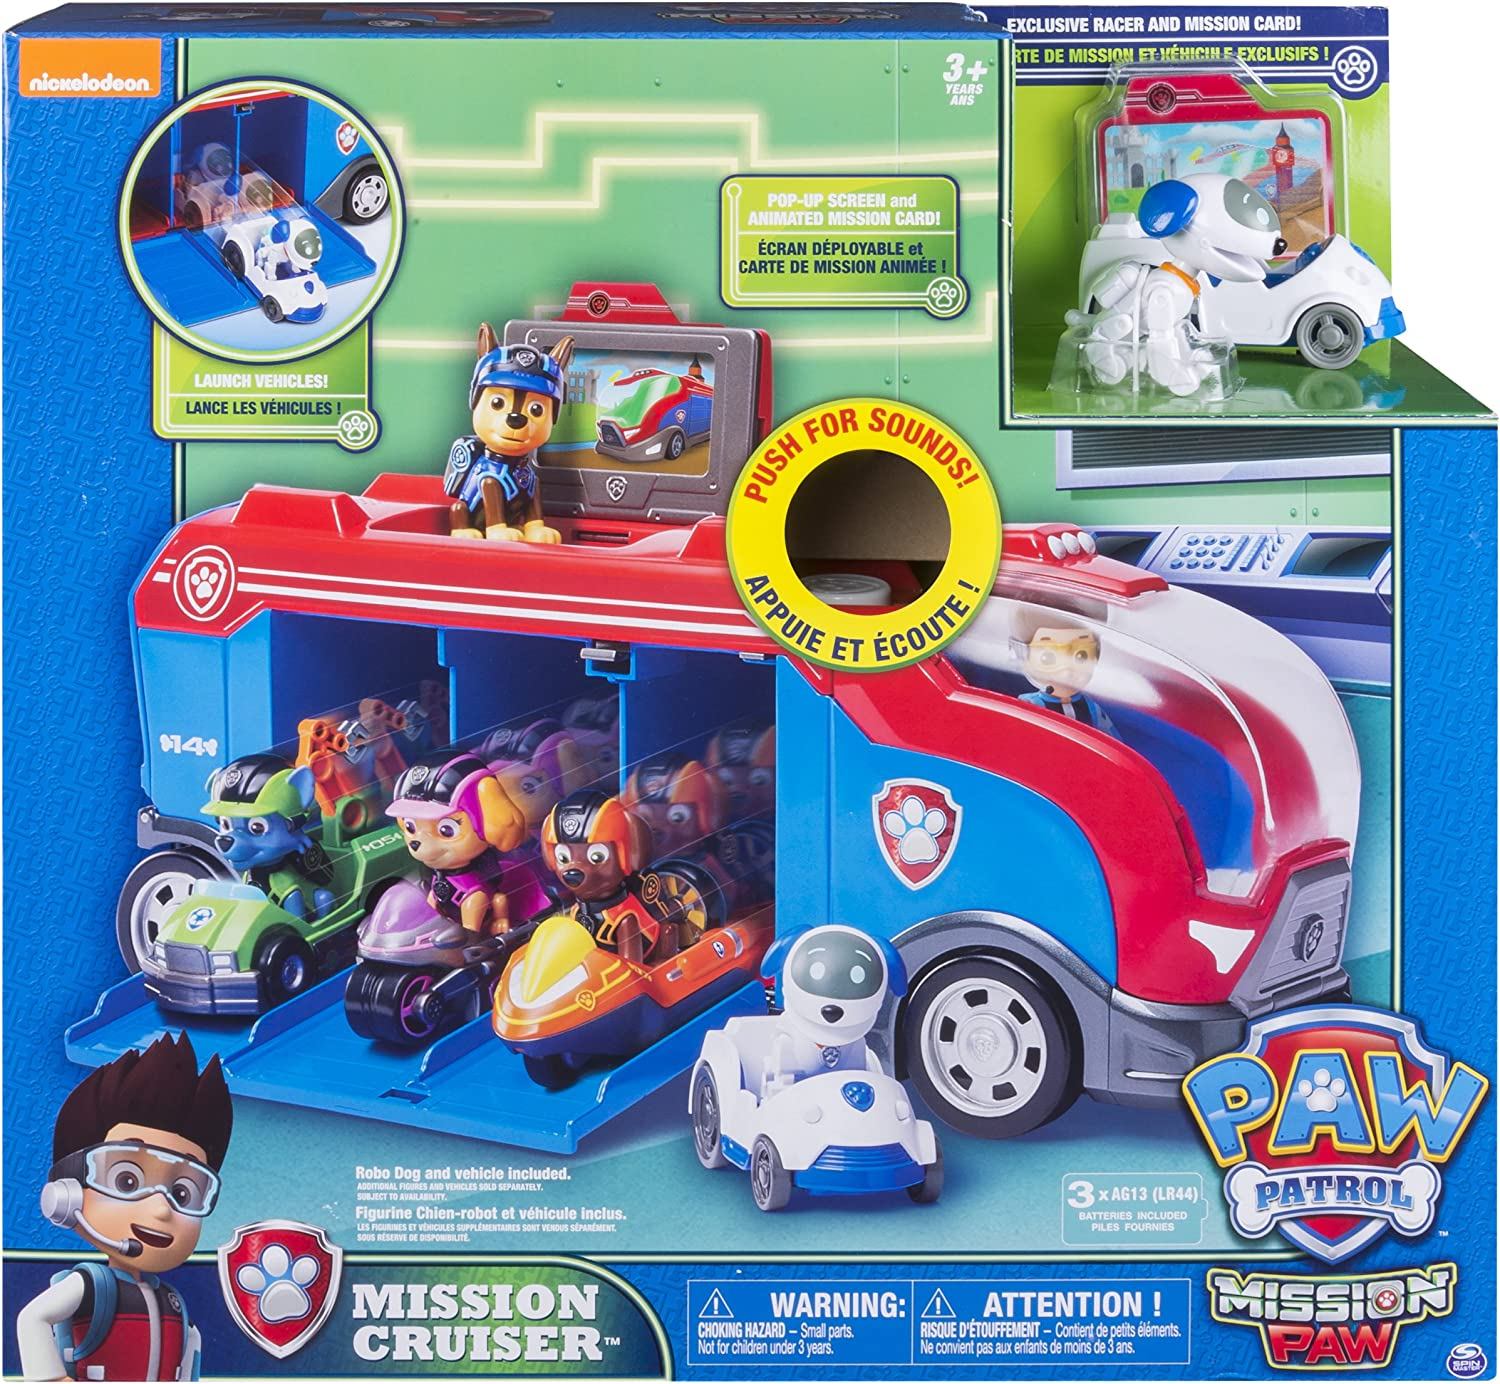 Paw Patrol Mission Cruiser Truck Vehicle Bus RV Electronic RoboDog Complete